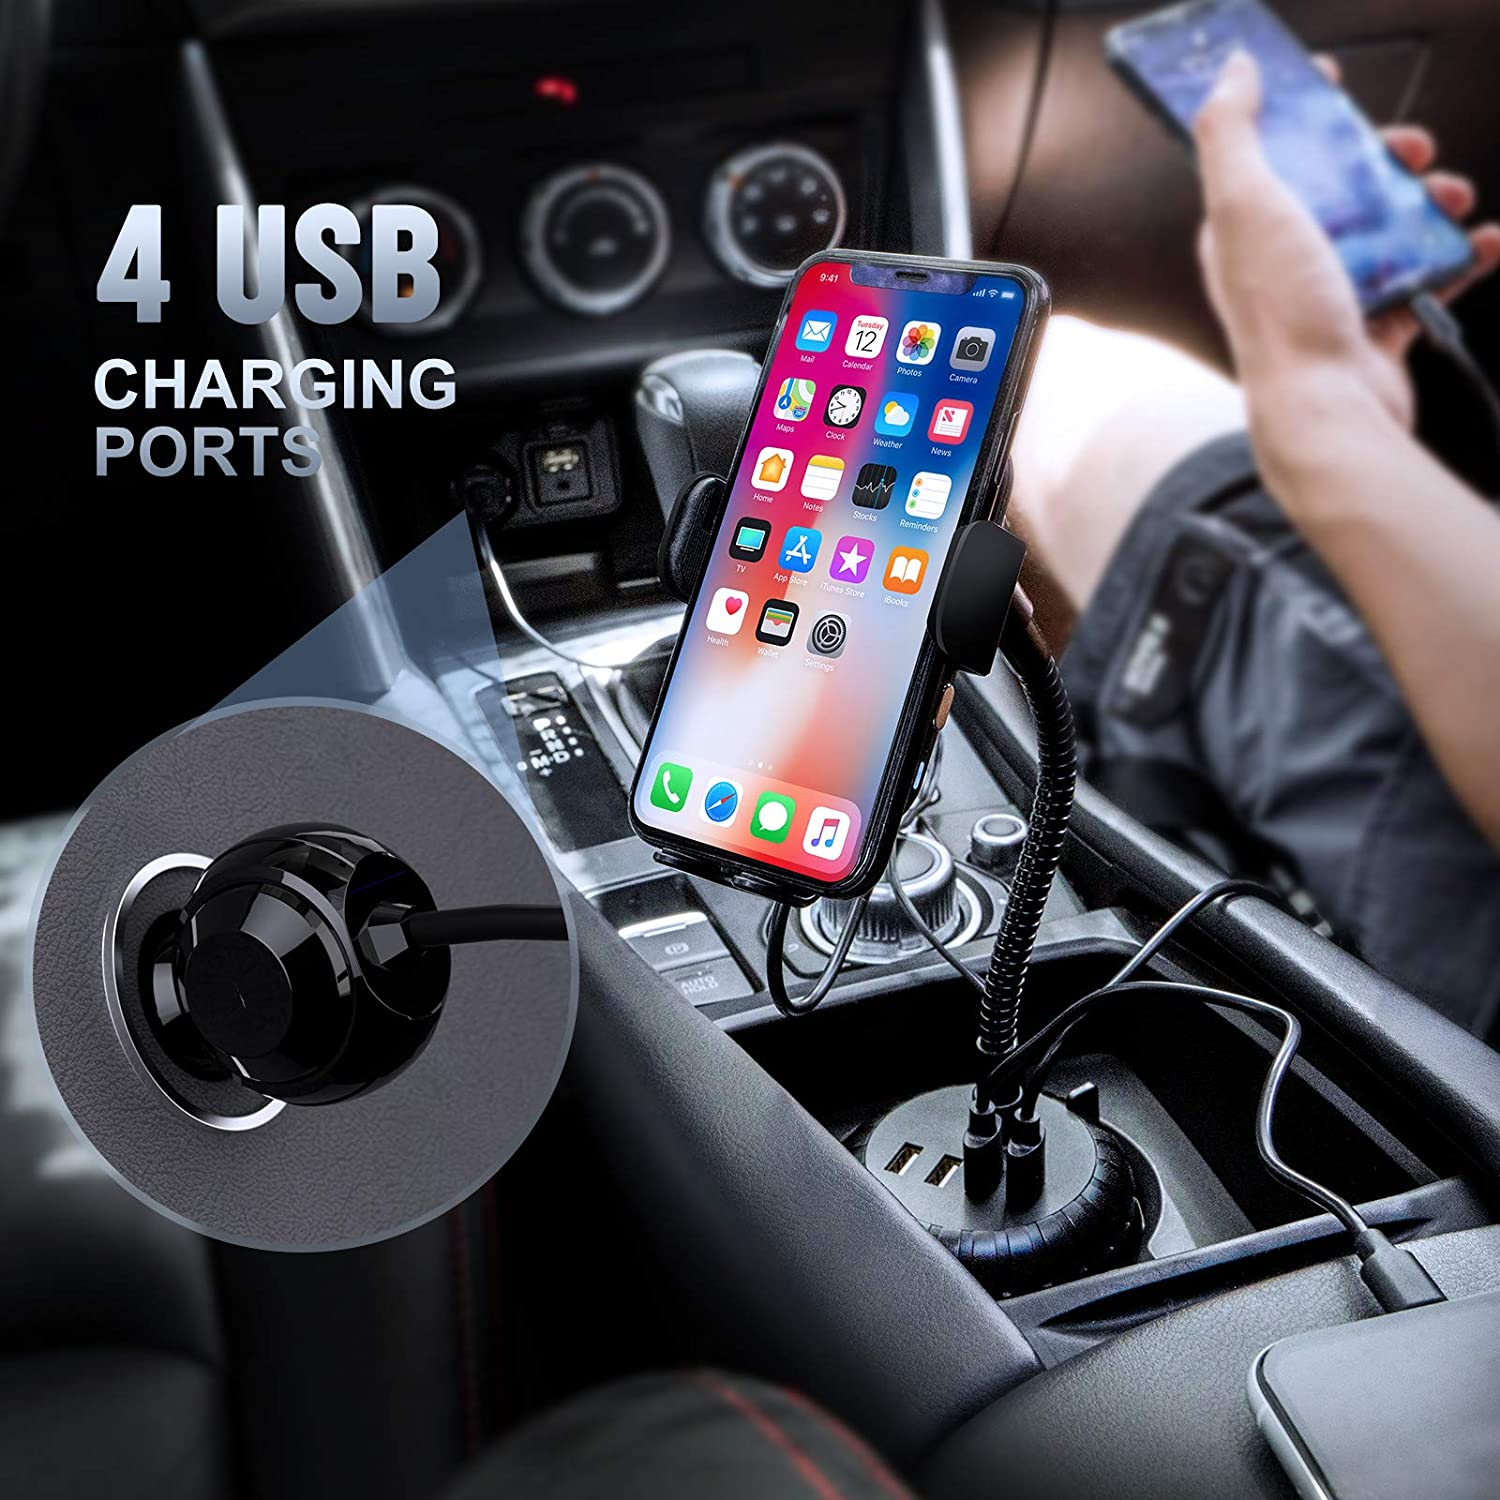 Wireless car Charger Sopownic 3-in-1 Car Cup Holder Phone Mount with 4 USB Ports Auto Clamping 10W Fast Qi Charging Cell Phone Cup Holder Compatible for iPhone Samsung and More